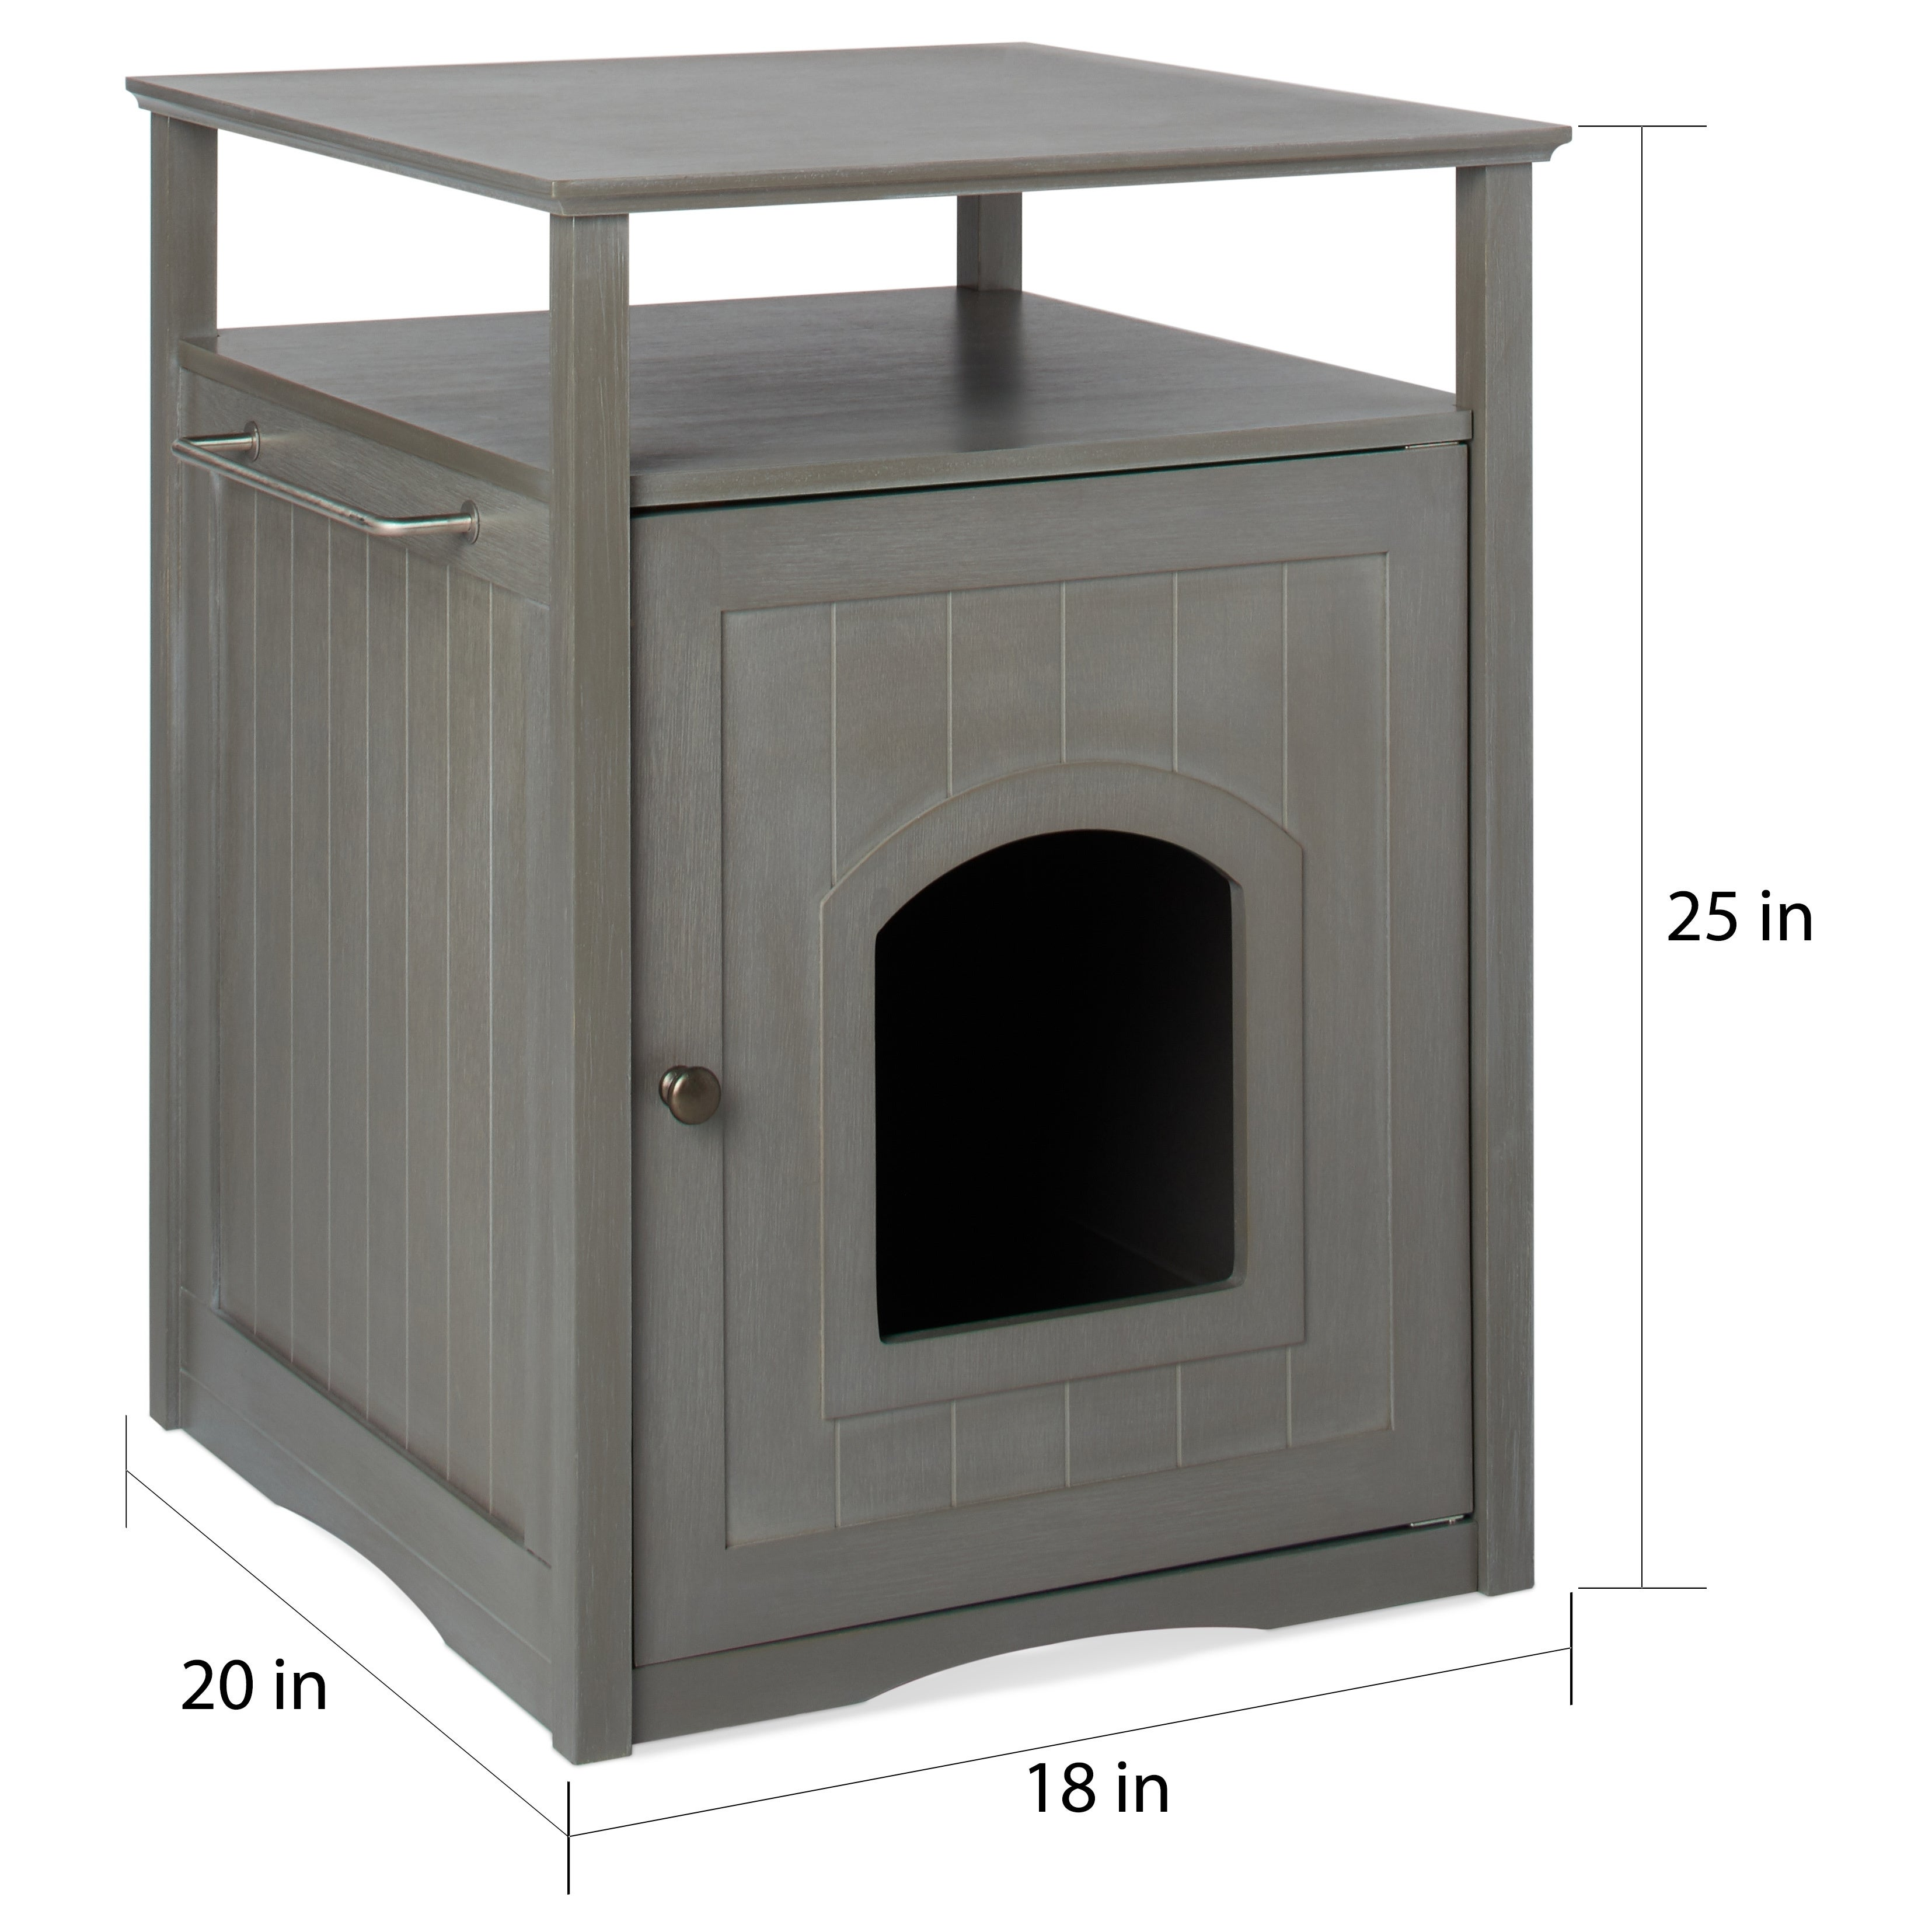 merry cat pet enclosure box washroom litter hidden nightstand free for house bench products furniture